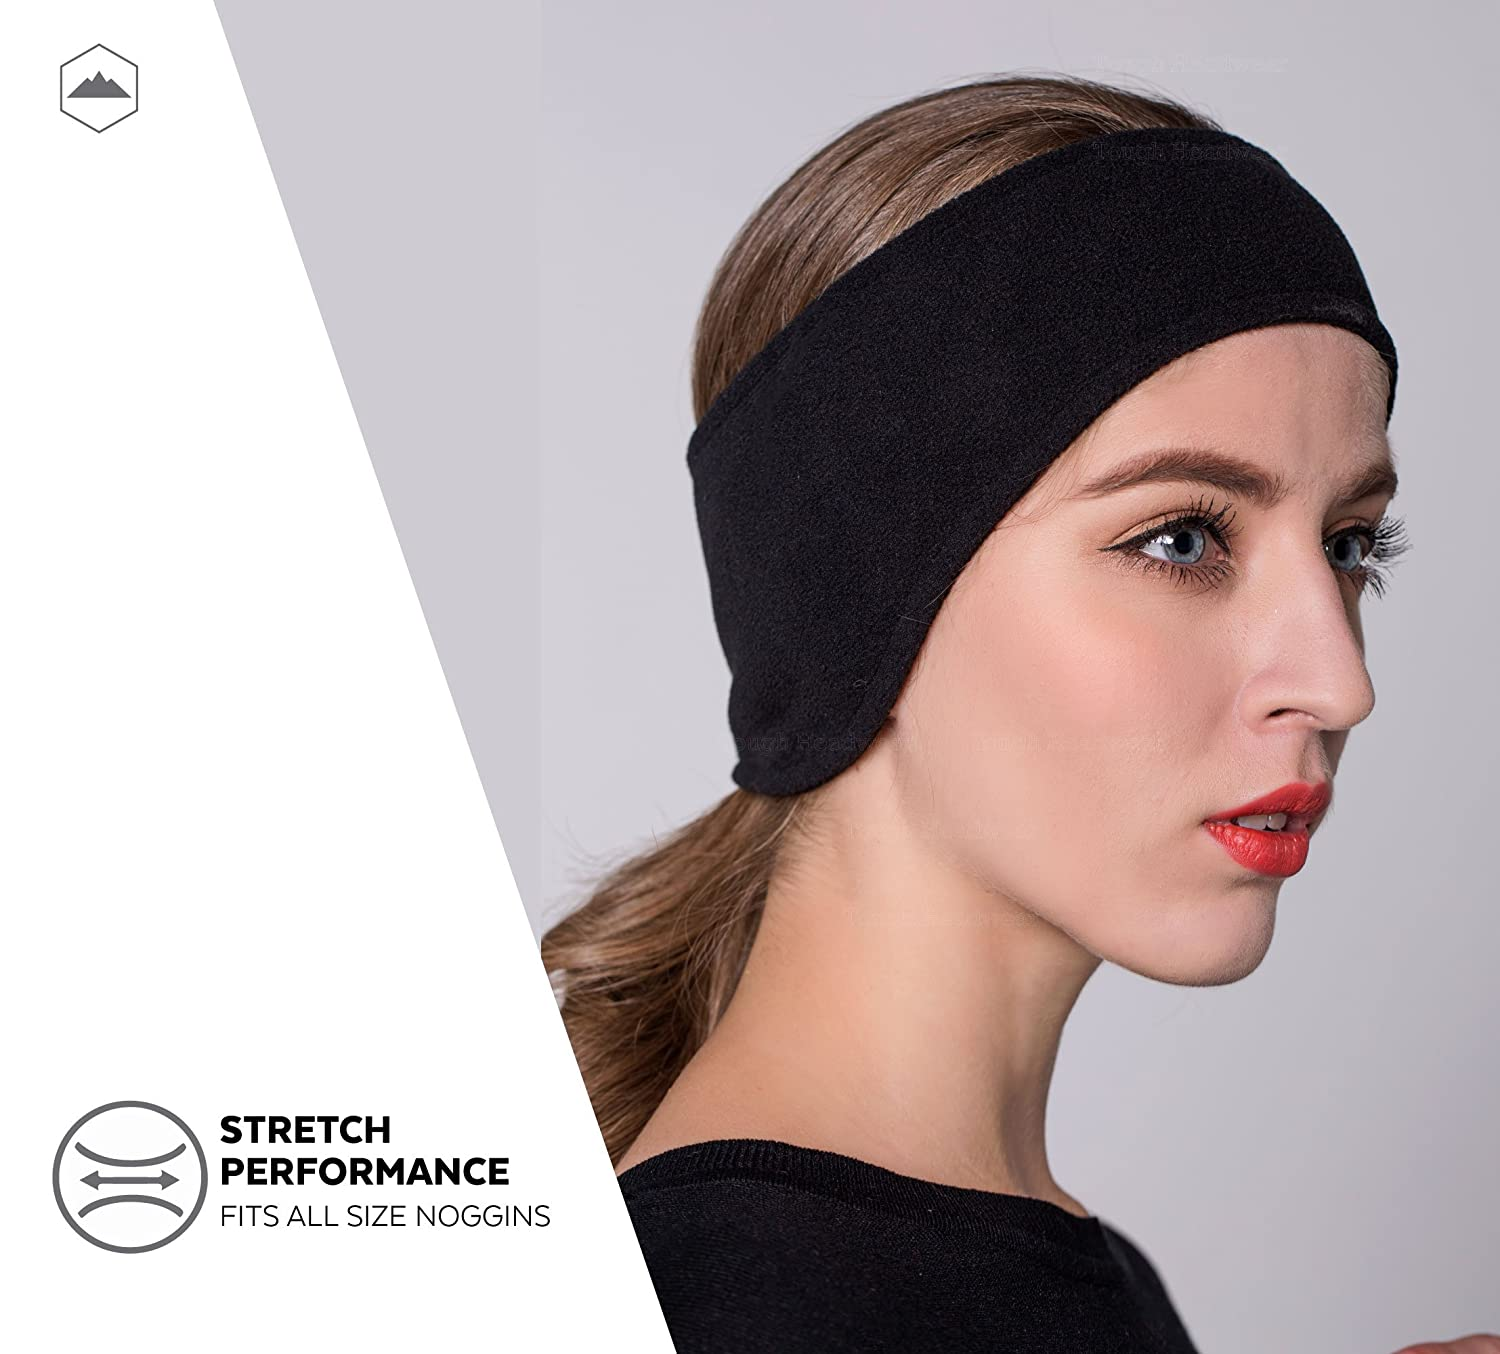 Fleece Ear Warmers Headband Sports Warm /& Cozy Winter Ear Covers Ideal for Running Cold Weather Ear Muffs Stretchy /& Thermal Polar Ear Band for Men /& Women Cycling /& Daily Wear